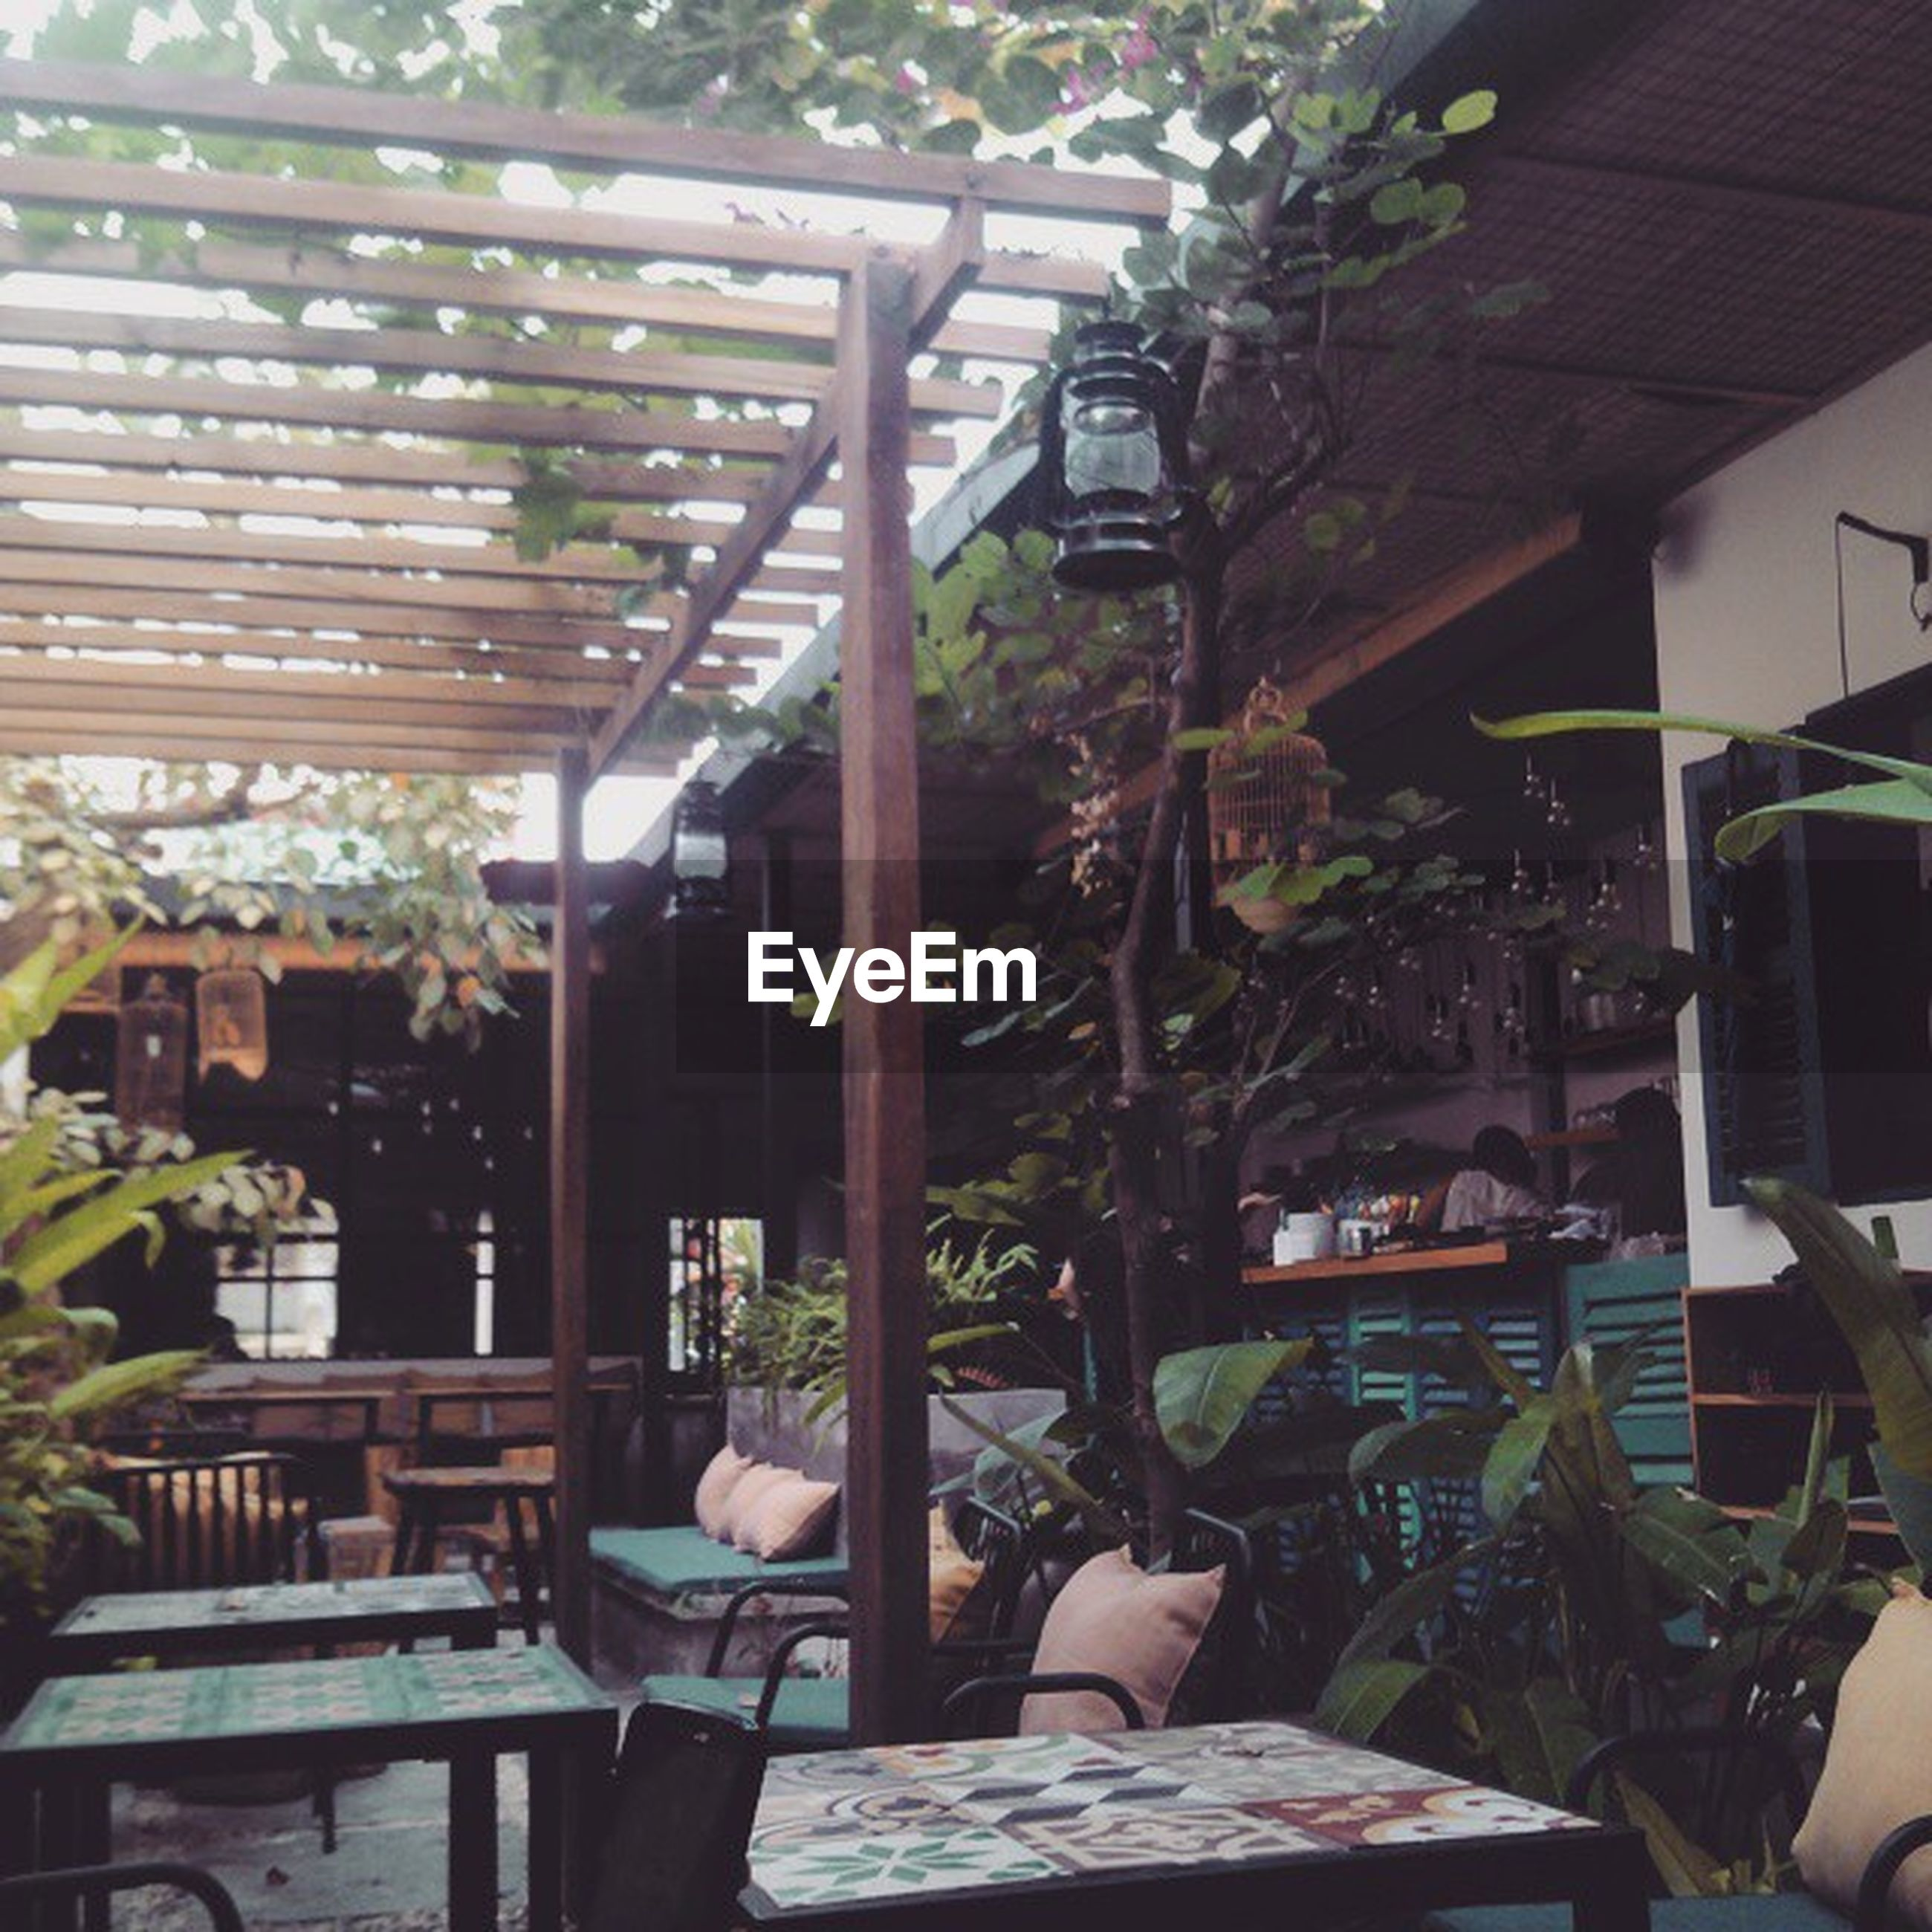 indoors, chair, table, potted plant, window, architecture, house, built structure, absence, home interior, restaurant, empty, relaxation, sitting, plant, day, sunlight, domestic room